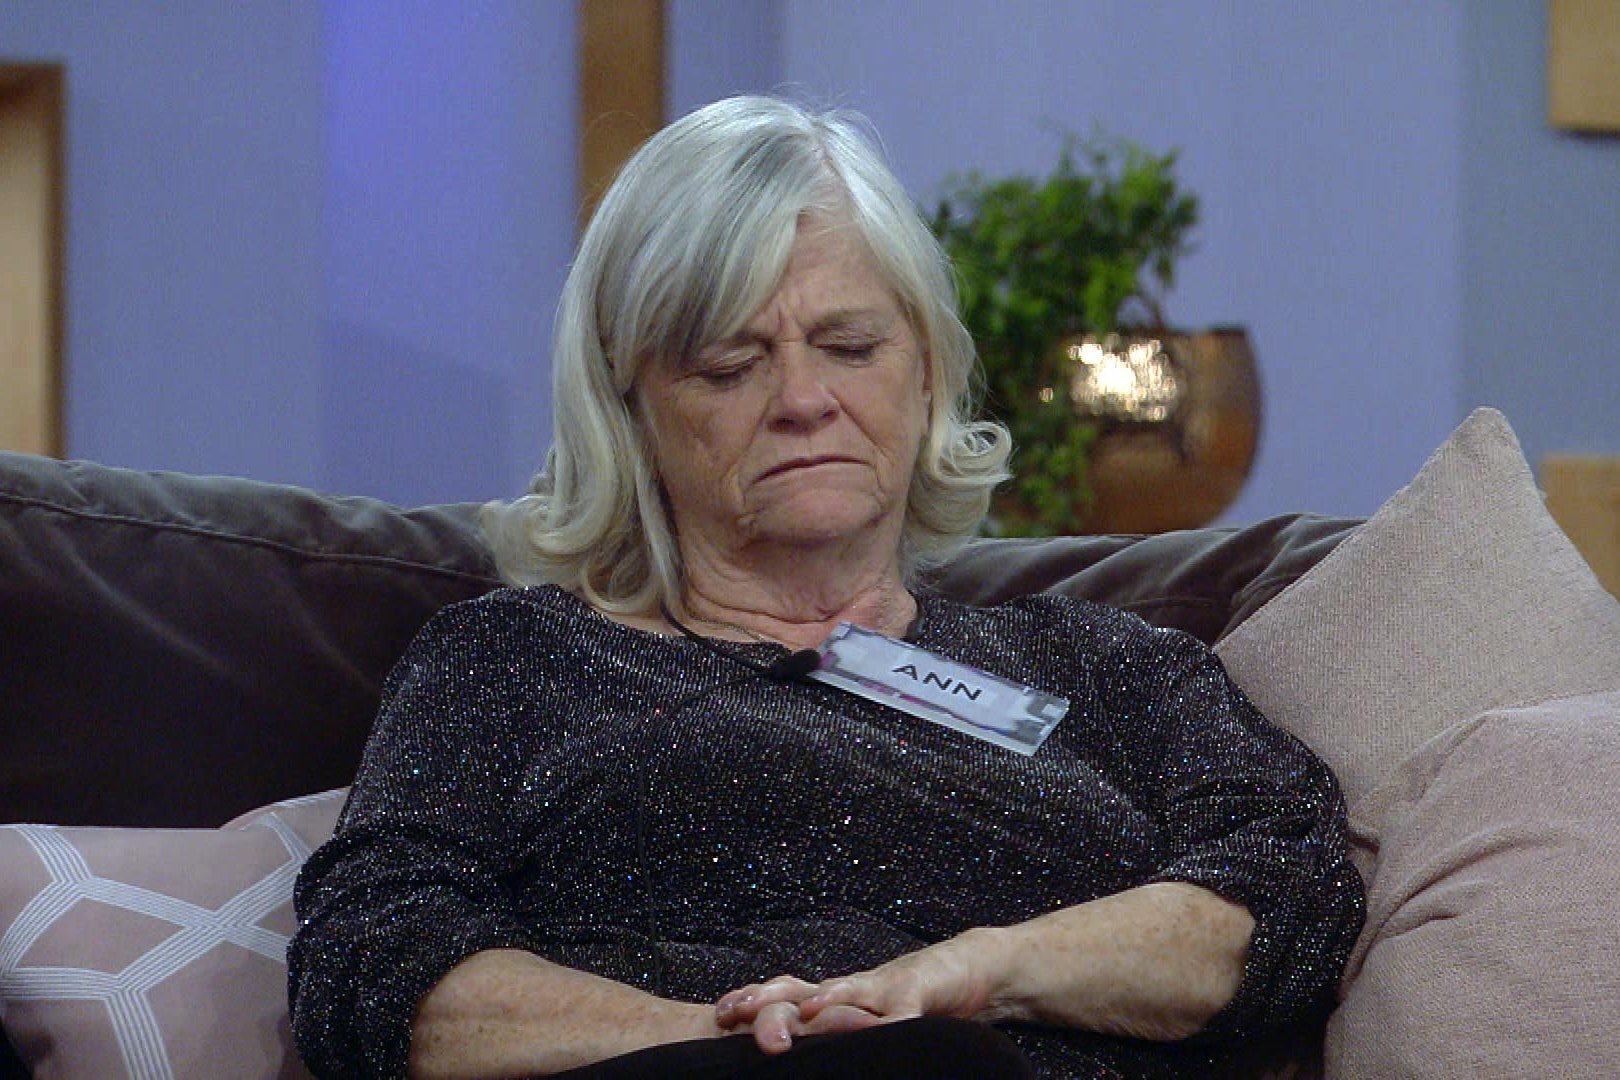 Ann Widdecombe shared her views in CBB (Channel 5)